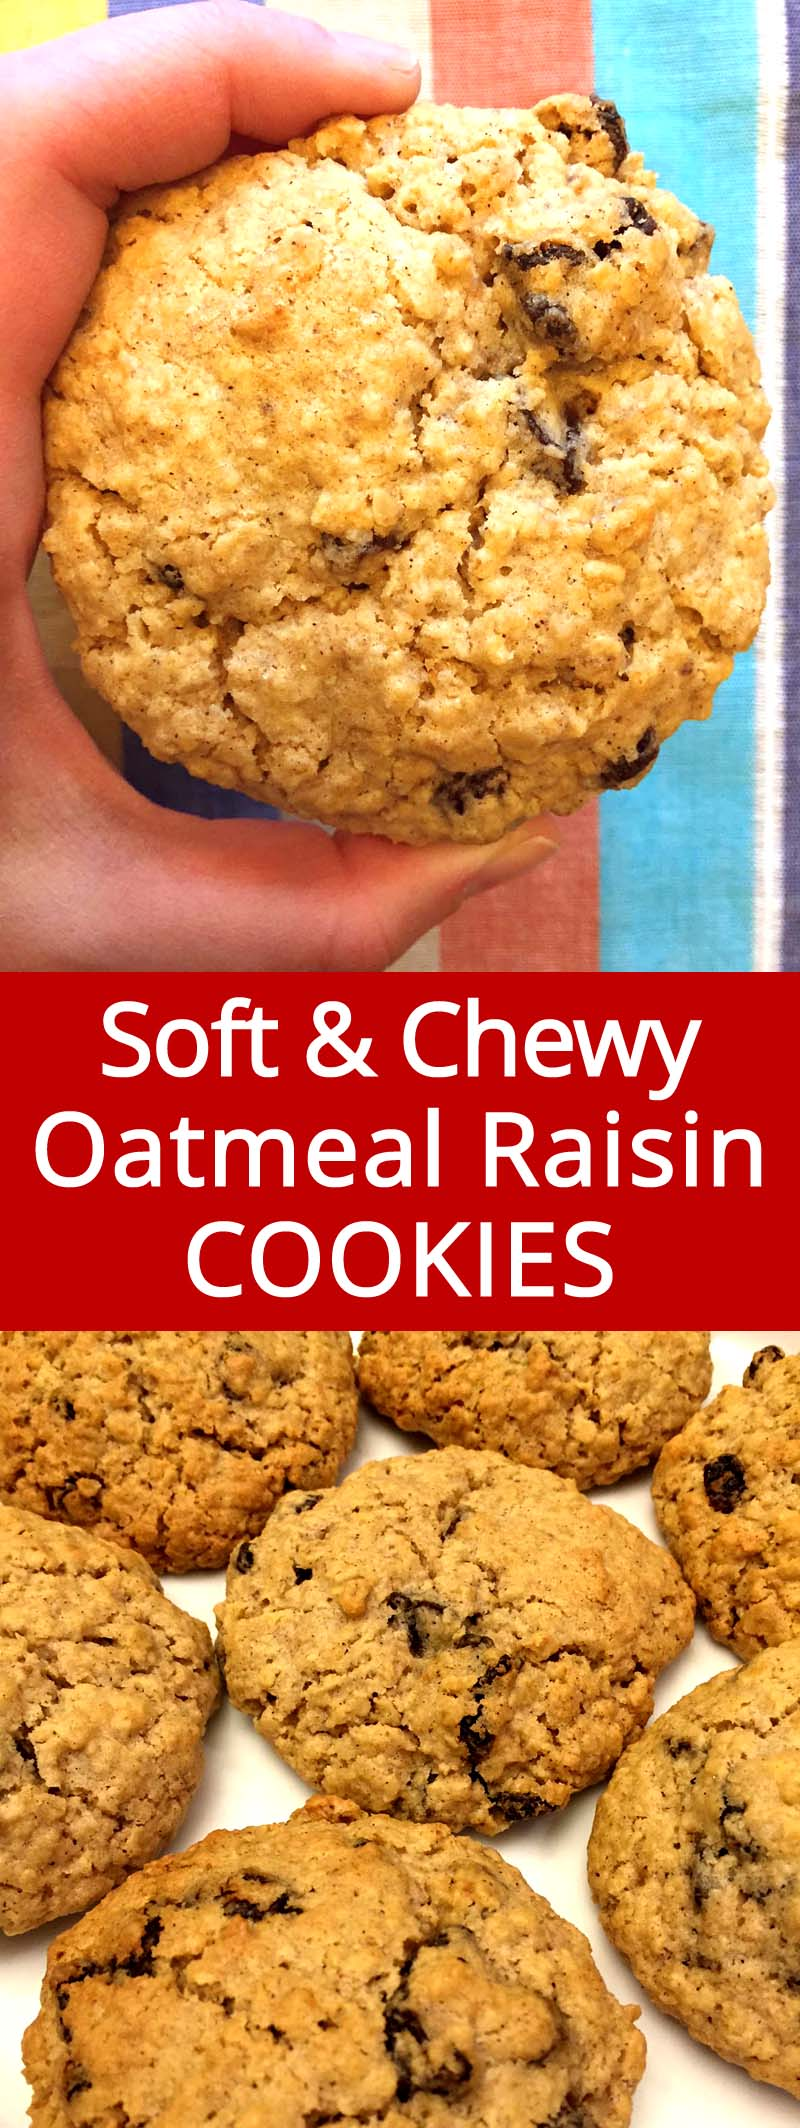 These easy oatmeal raisin cookies are amazing! They are so soft and chewy, the texture is simply perfect! Once you'll try these soft oatmeal raisin cookies, you'll never make them any other way!